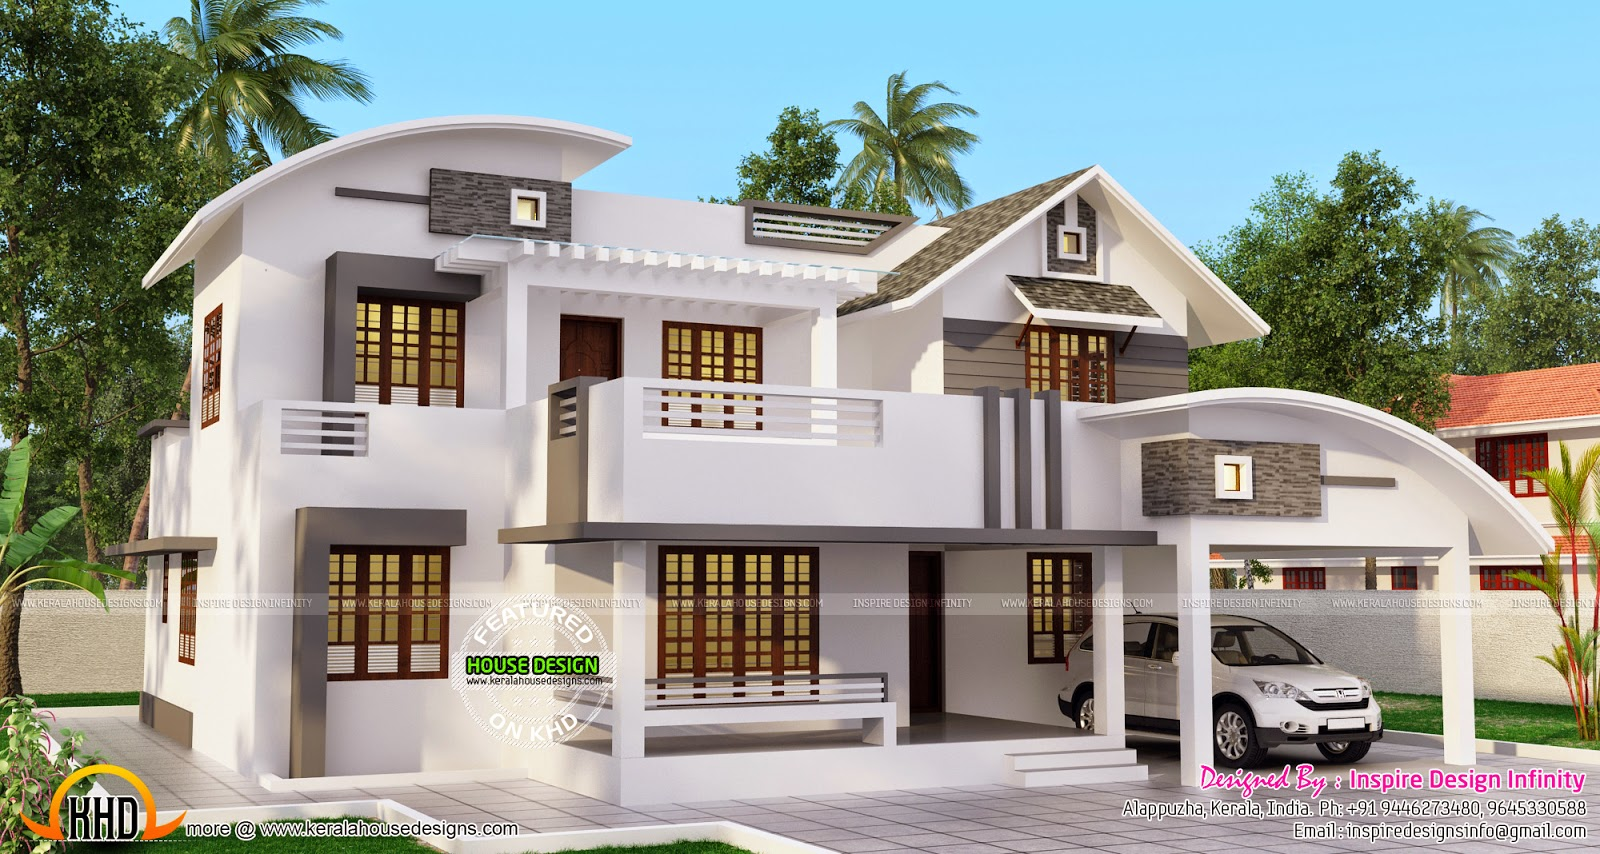 Double storied modern home kerala home design and floor for Home design double floor